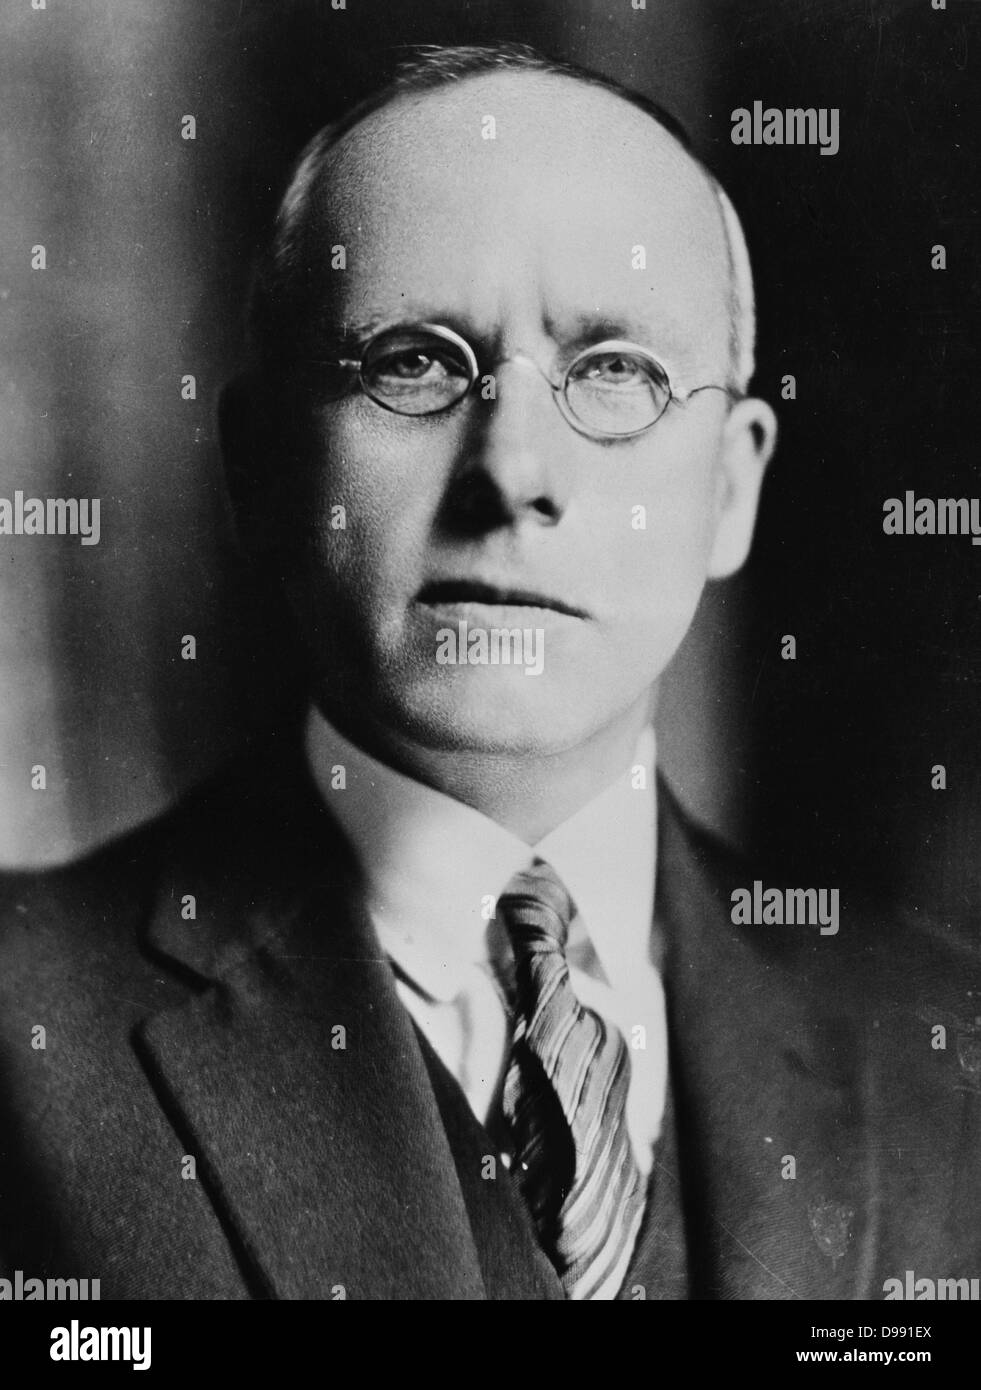 Très Honorable Peter Fraser (1884-1950), premier ministre de la Nouvelle-Zélande en 1940-1949. Né Photo Stock